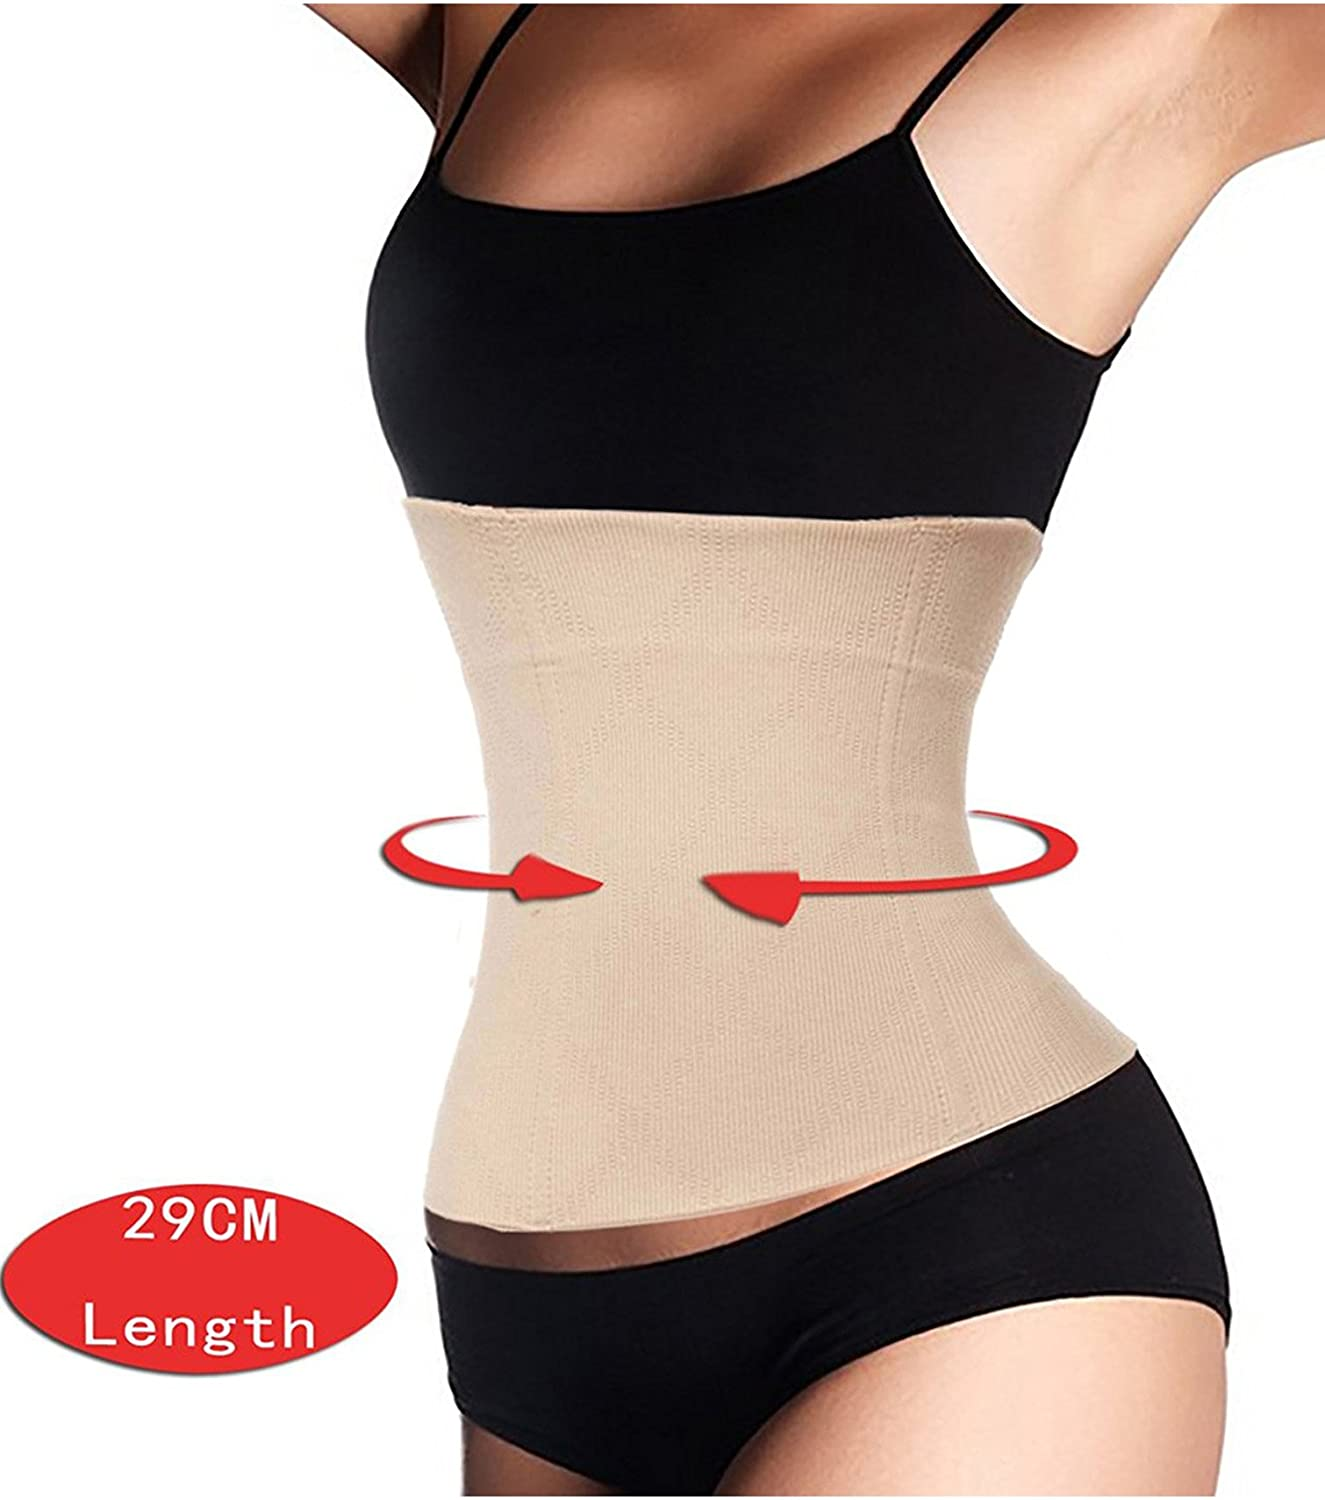 Loday 2 in 1 Postpartum Recovery Belt, Body Wraps Works for Tighten Loose Skin